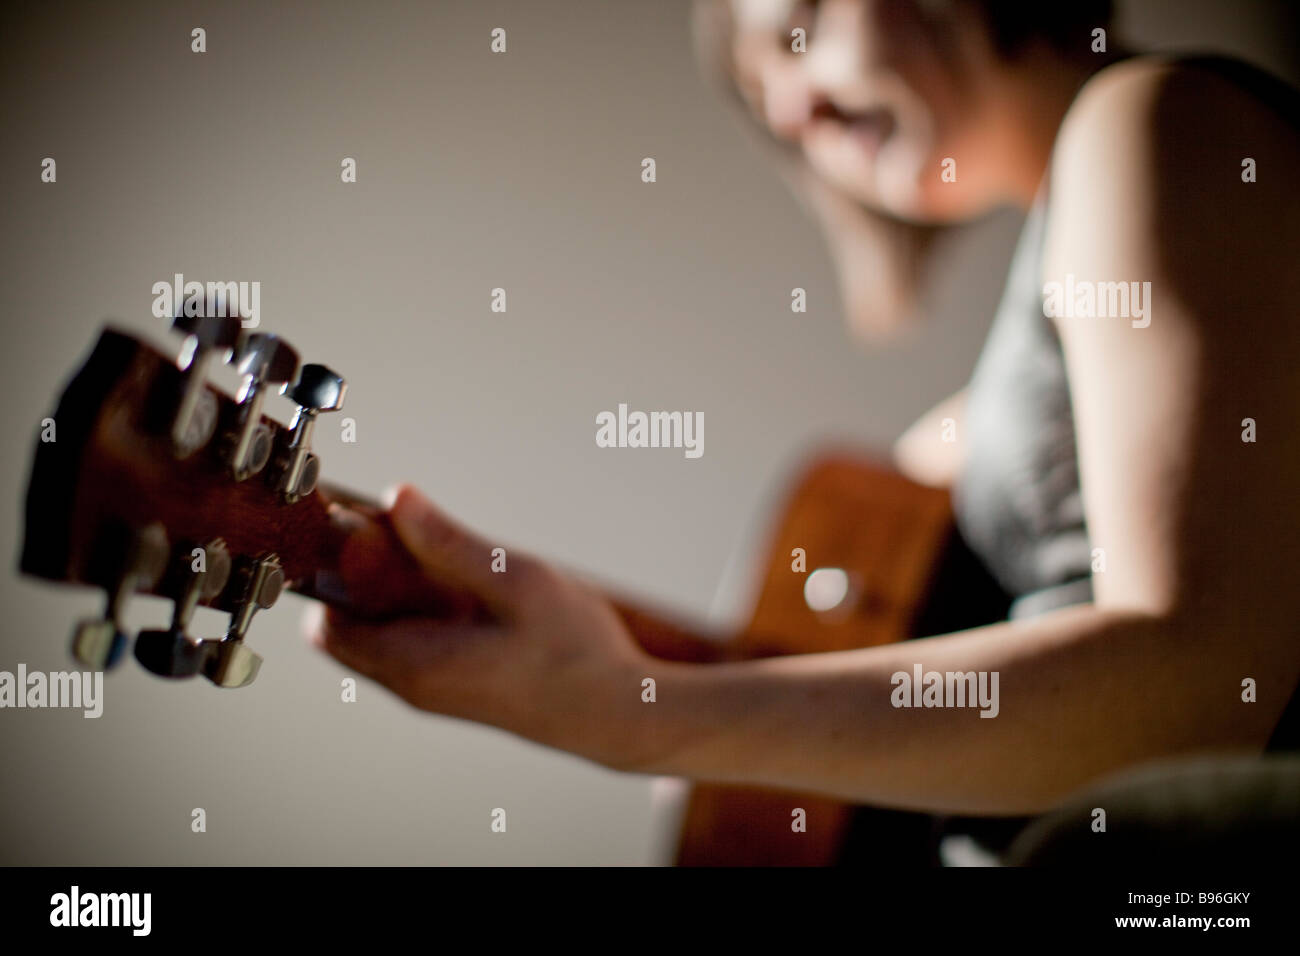 Young woman playing guitar - Stock Image